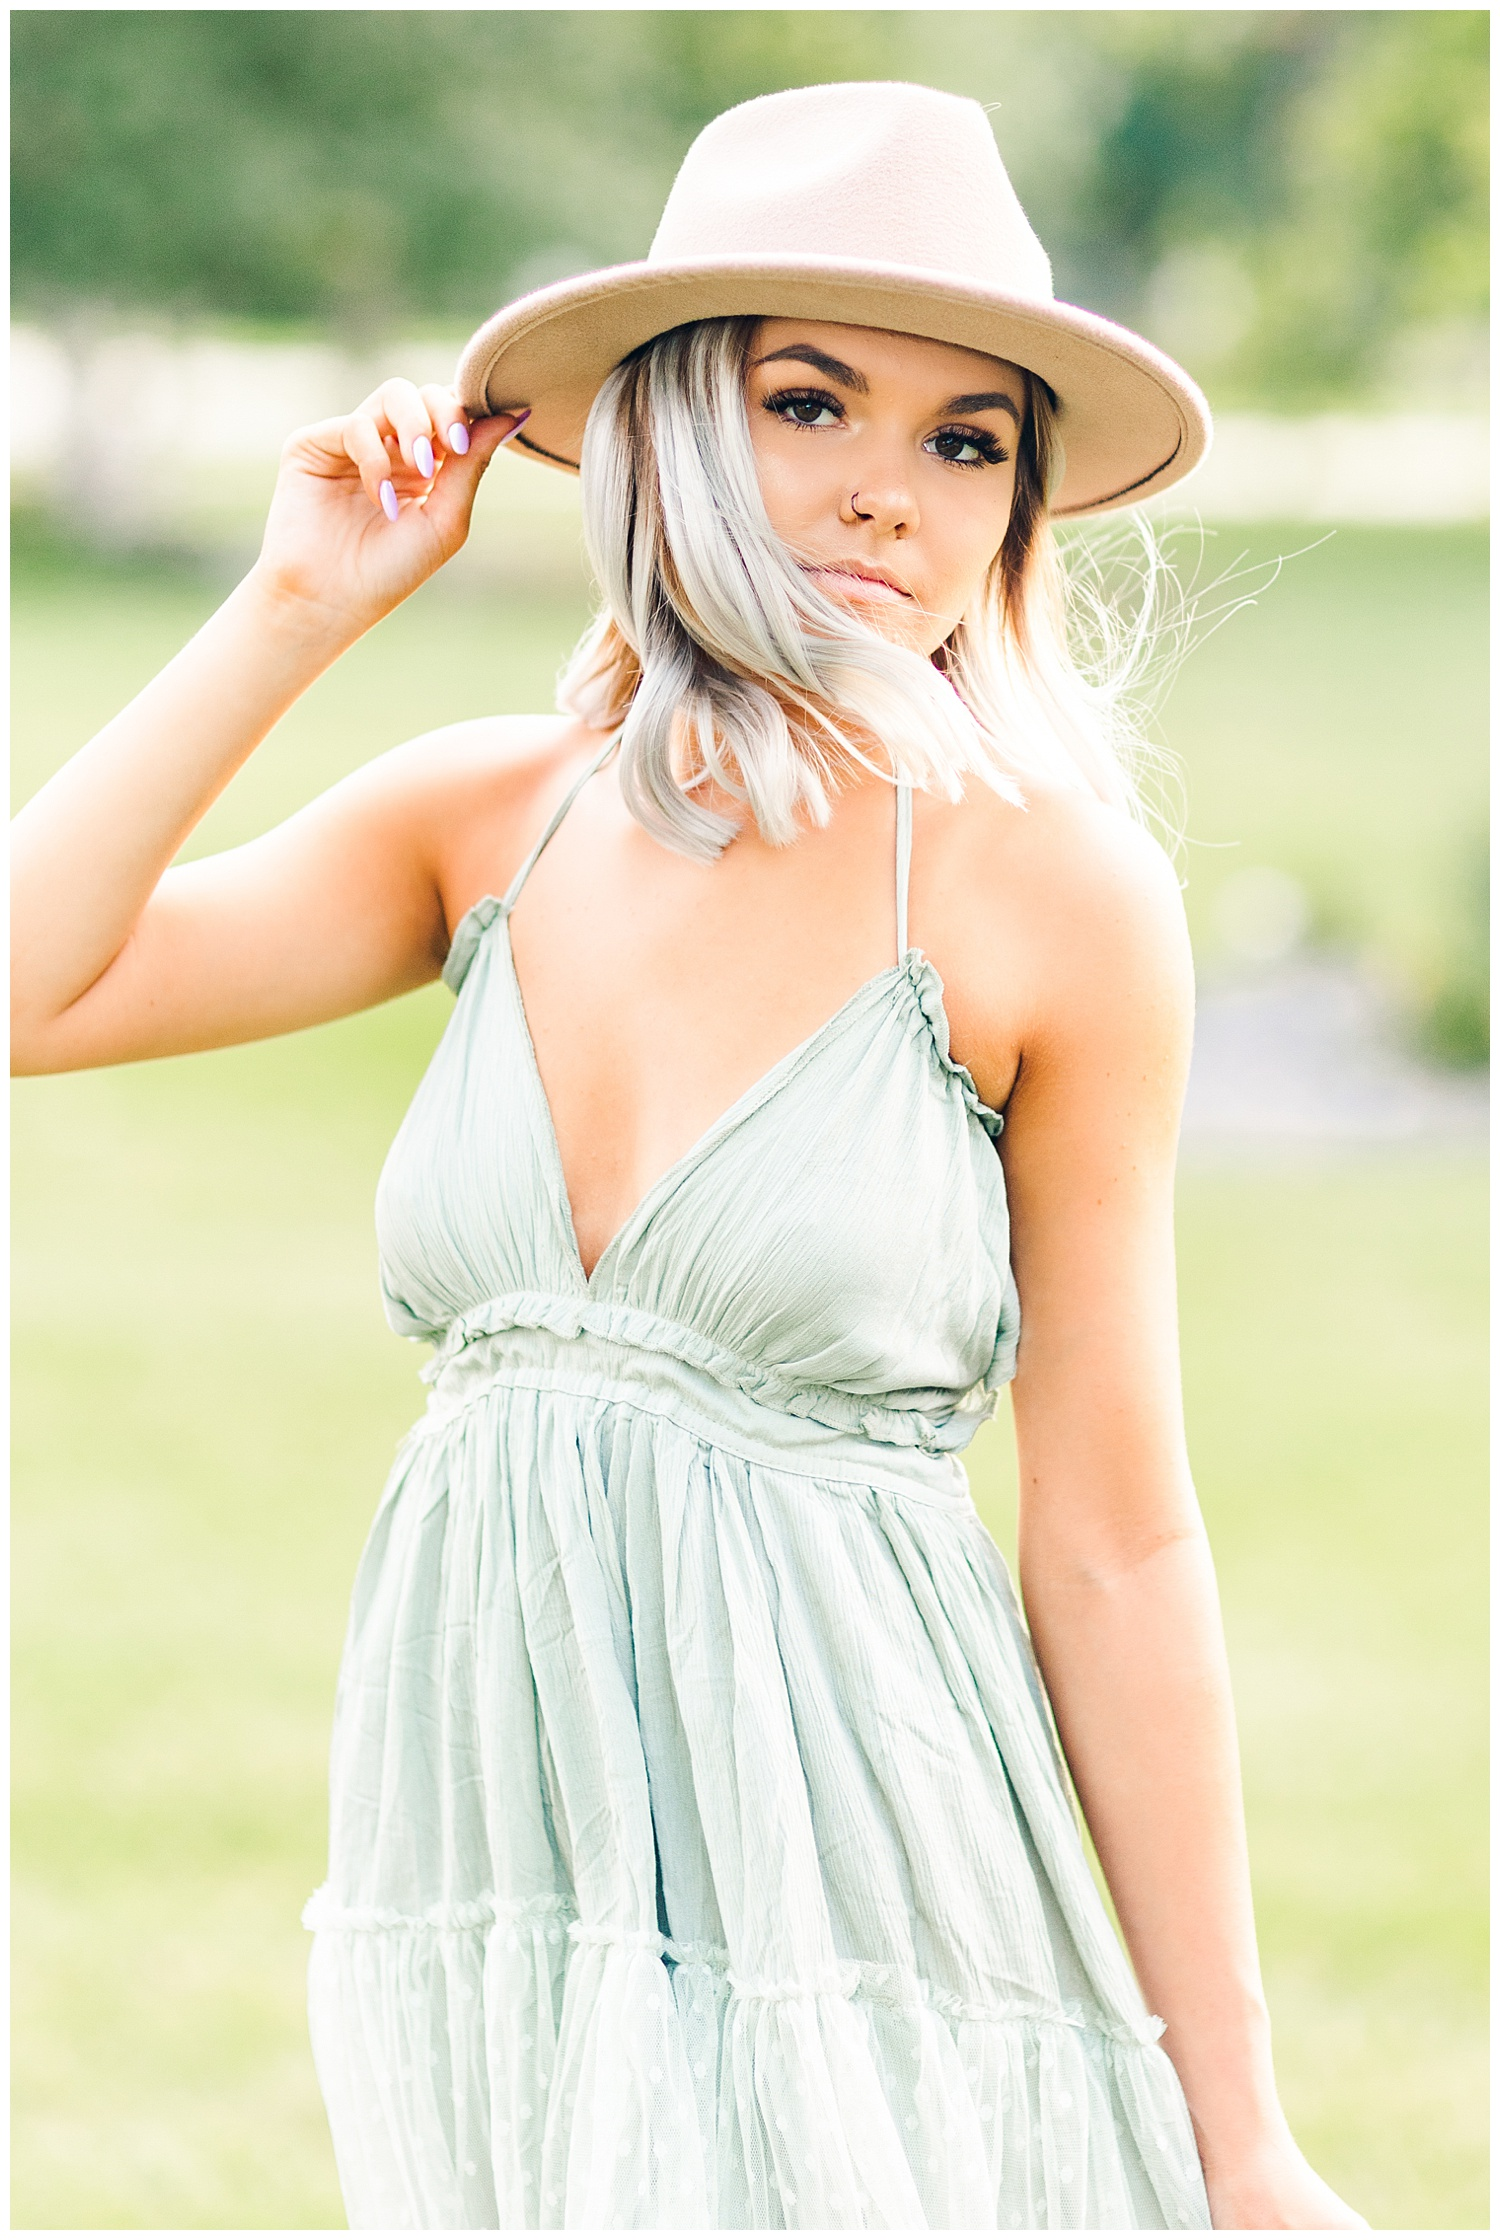 Addison wearing a green dress holds the brim of her hat while her hair blows in the breeze   CB Studio